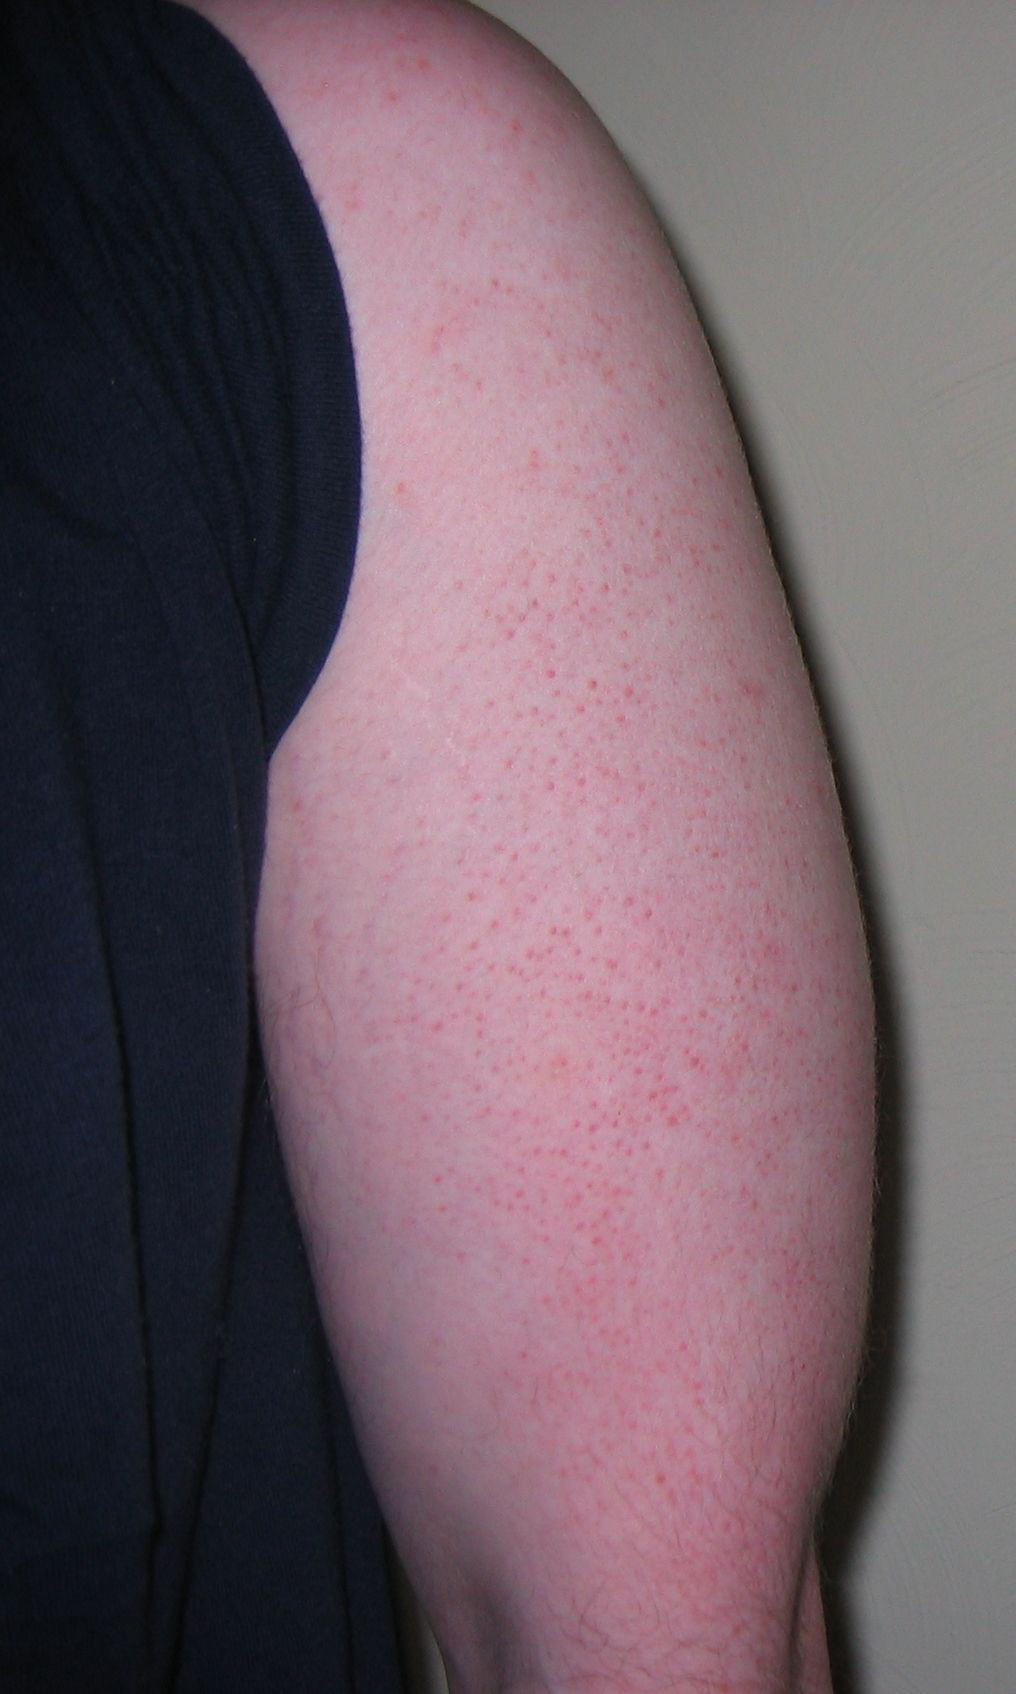 Best Essential Oils For Keratosis Pilaris: Fare Thee Well 'Chicken Skin' Essential Oil Benefits